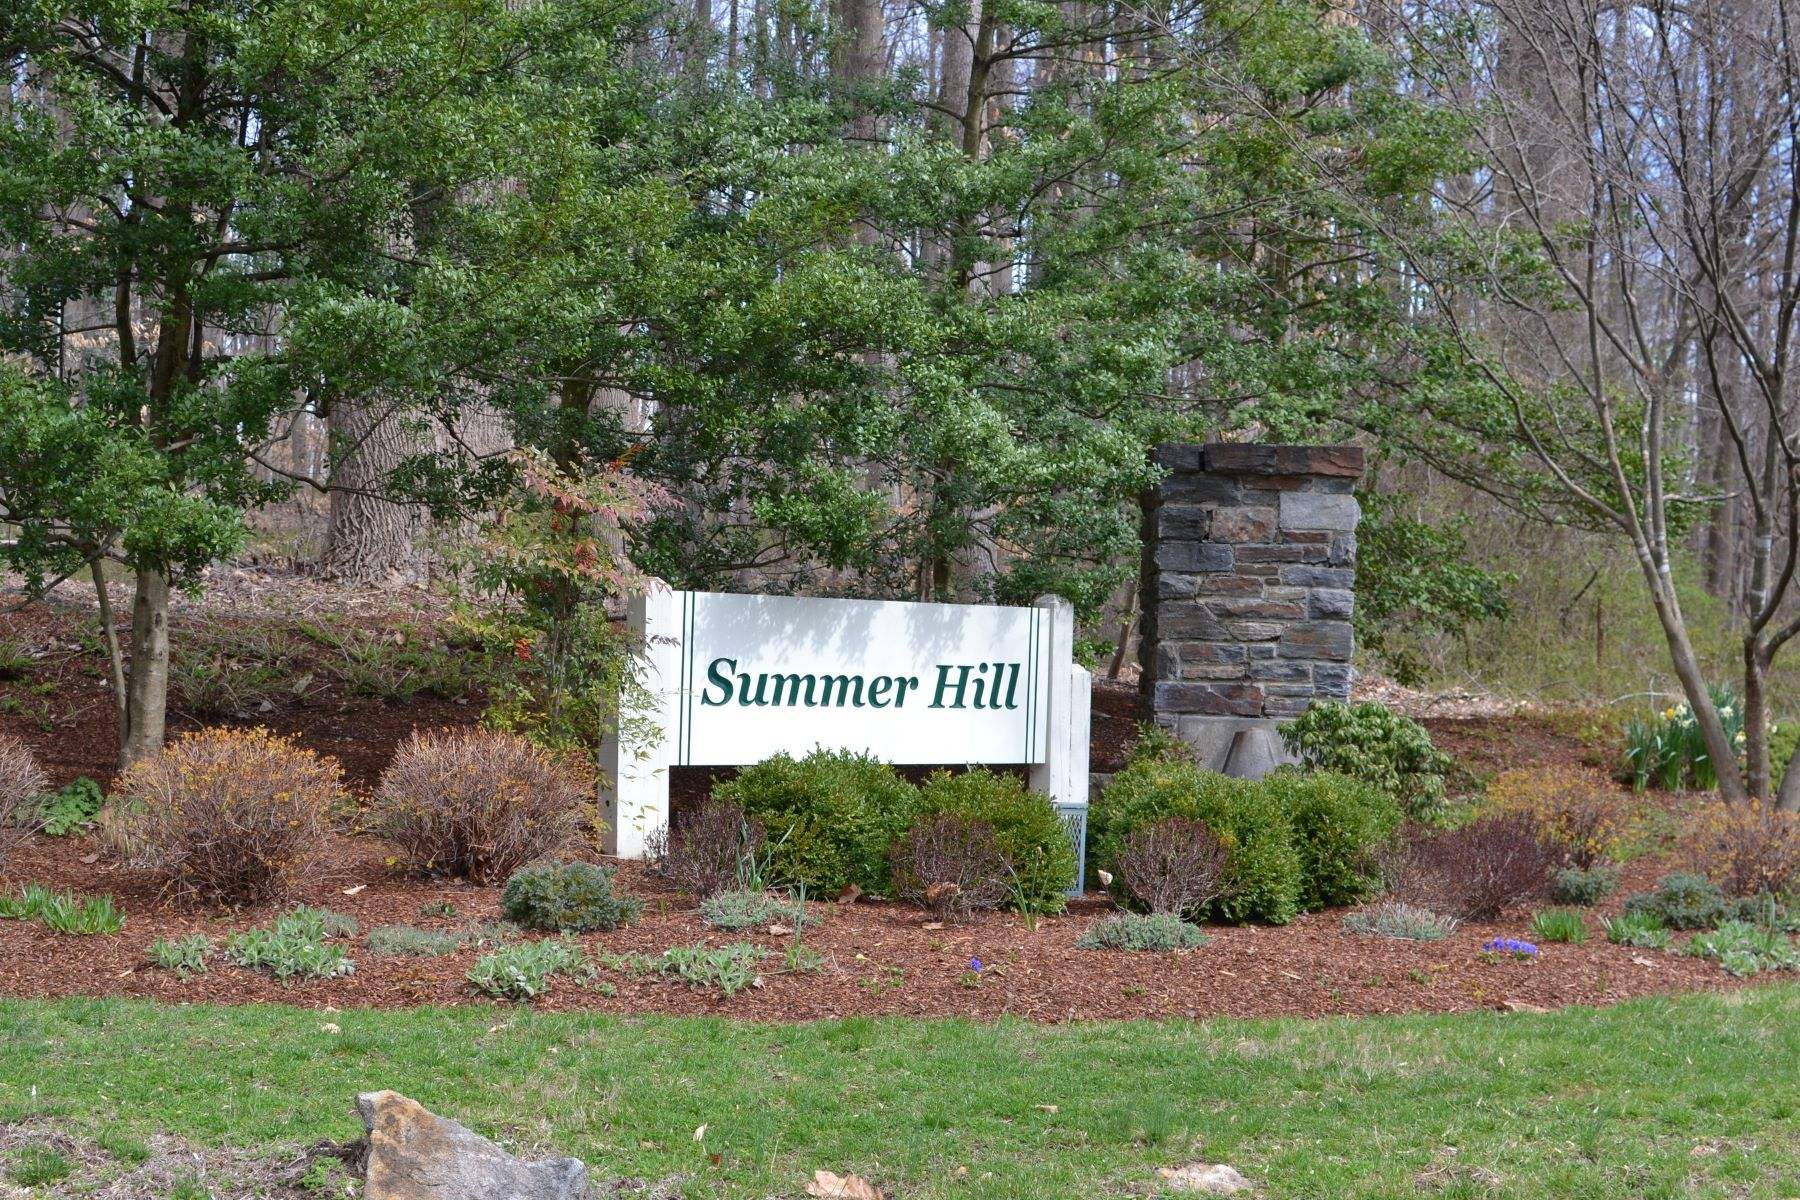 Land for Sale at Summer Hill Beautiful, Wooded Lot 13701 Harcum Road Phoenix, Maryland 21131 United States